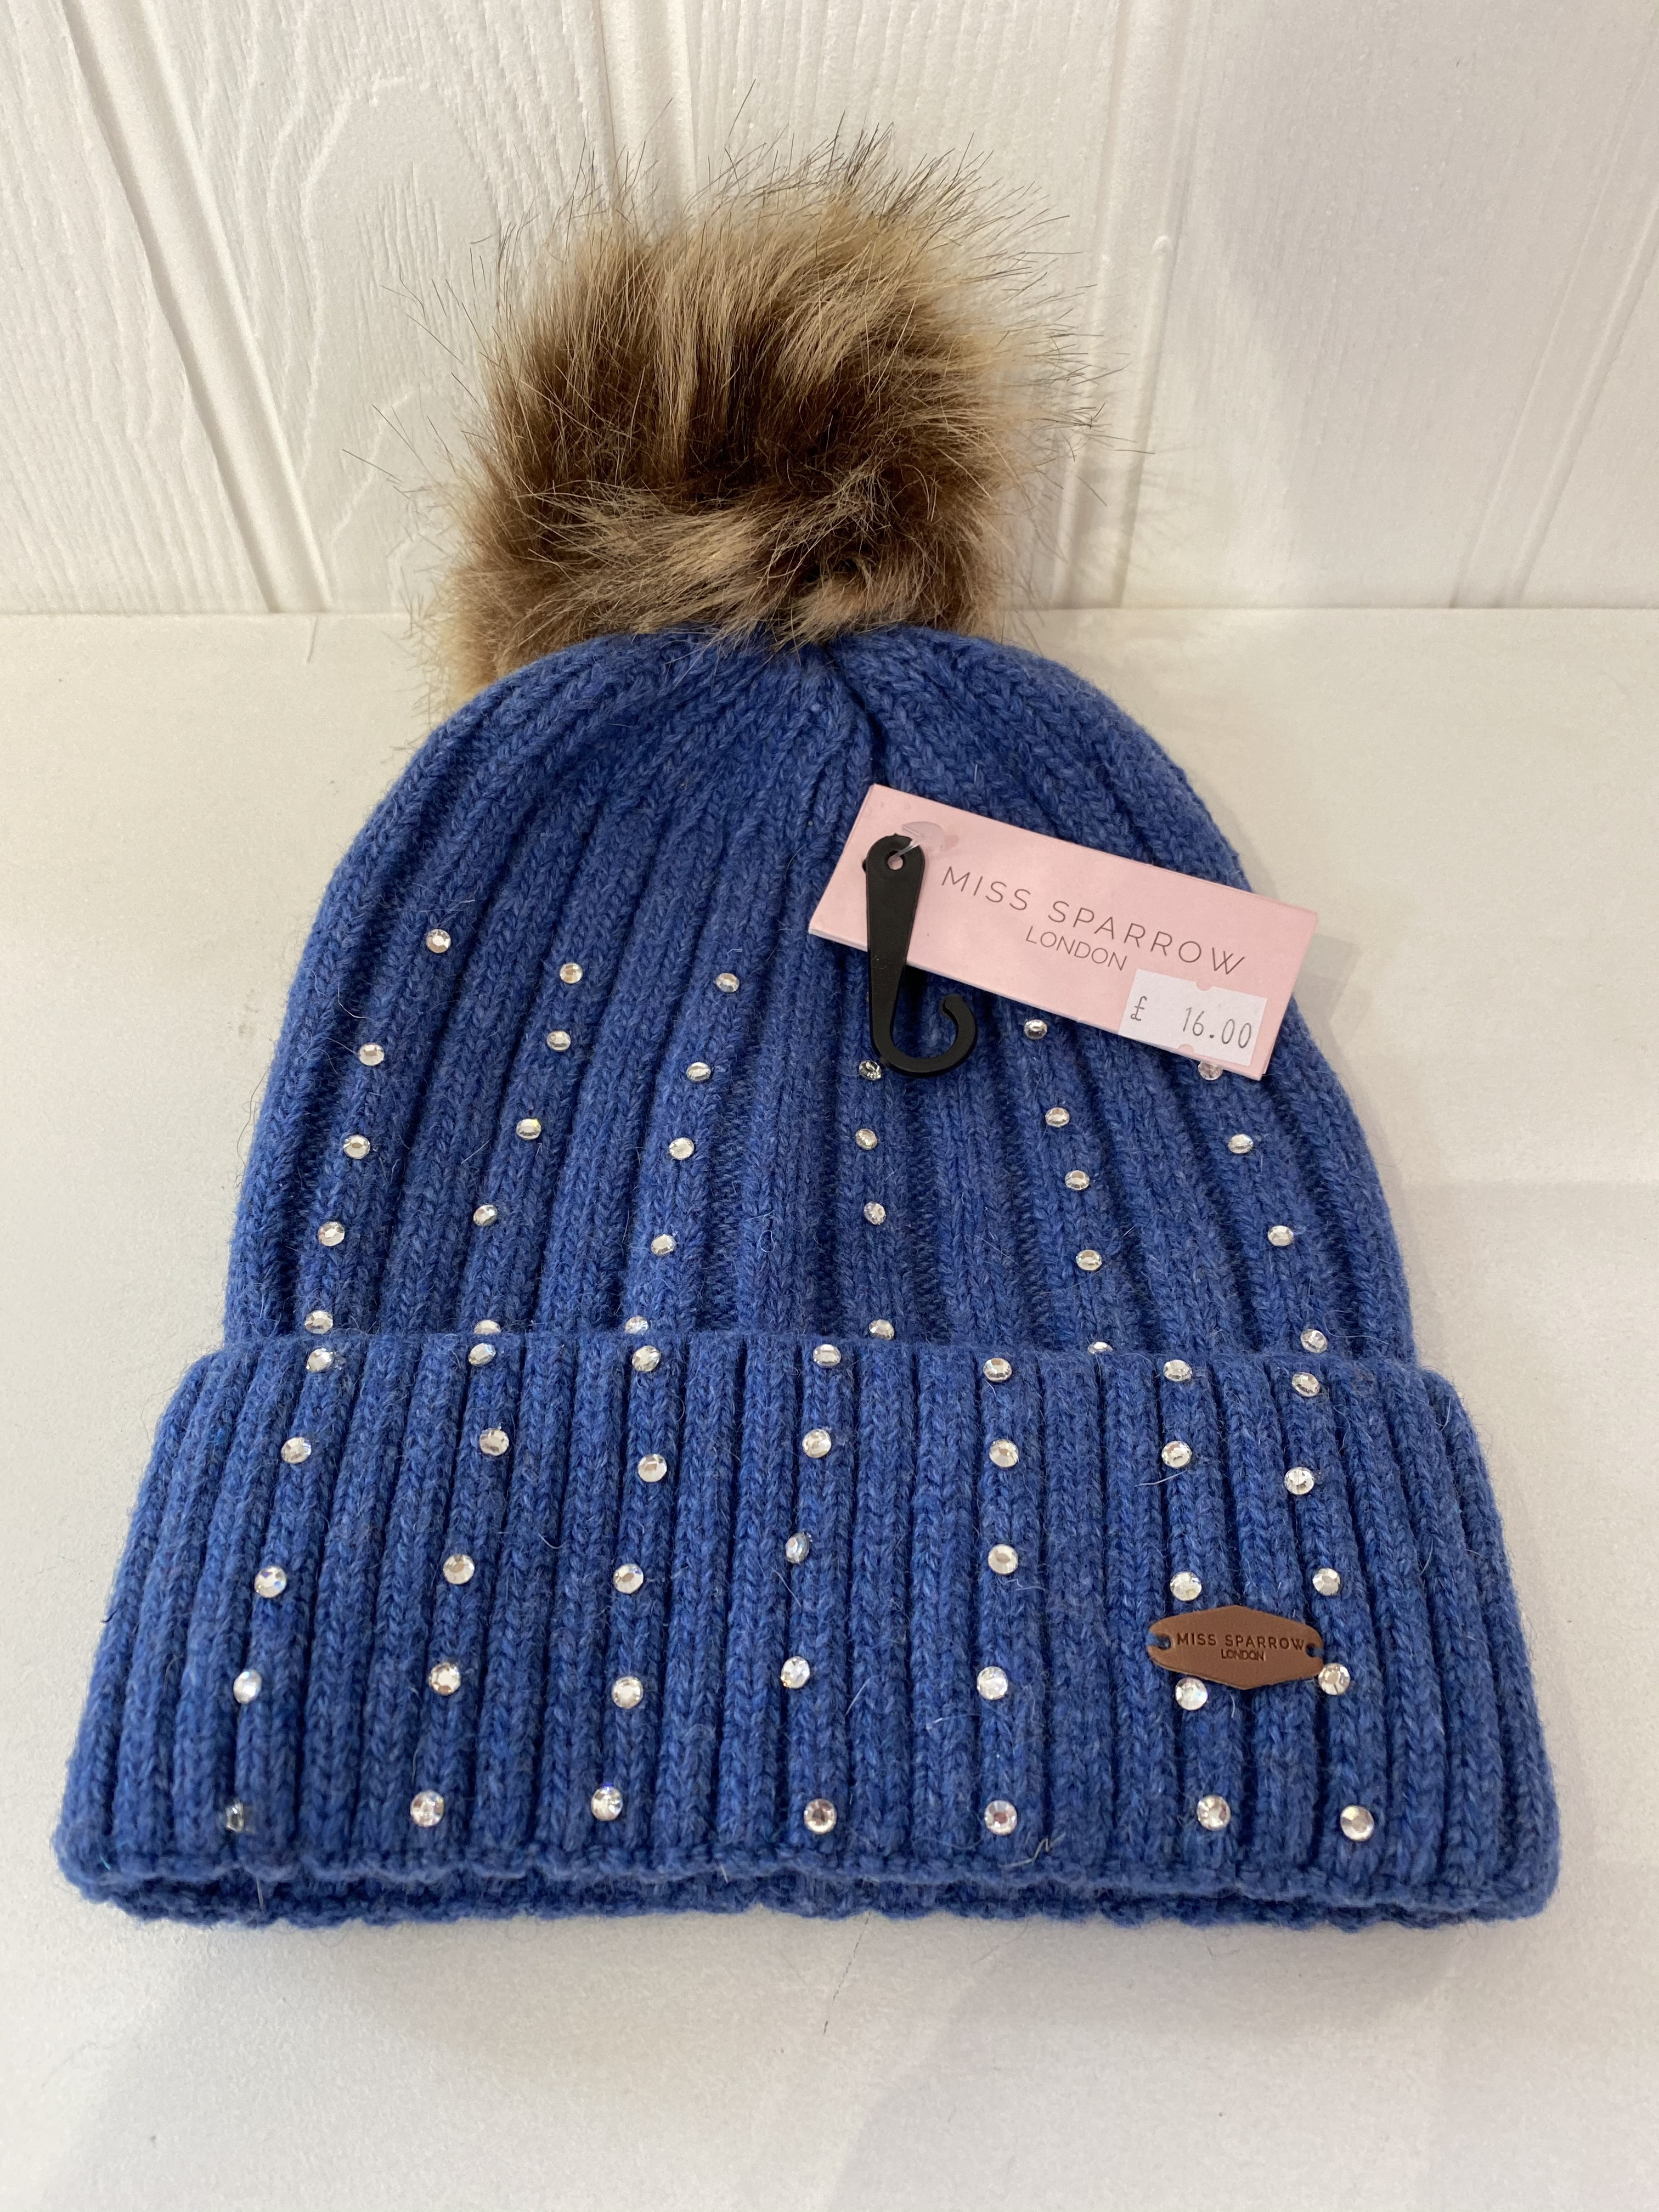 NOW £10 Denim Blue Hat With Diamante's